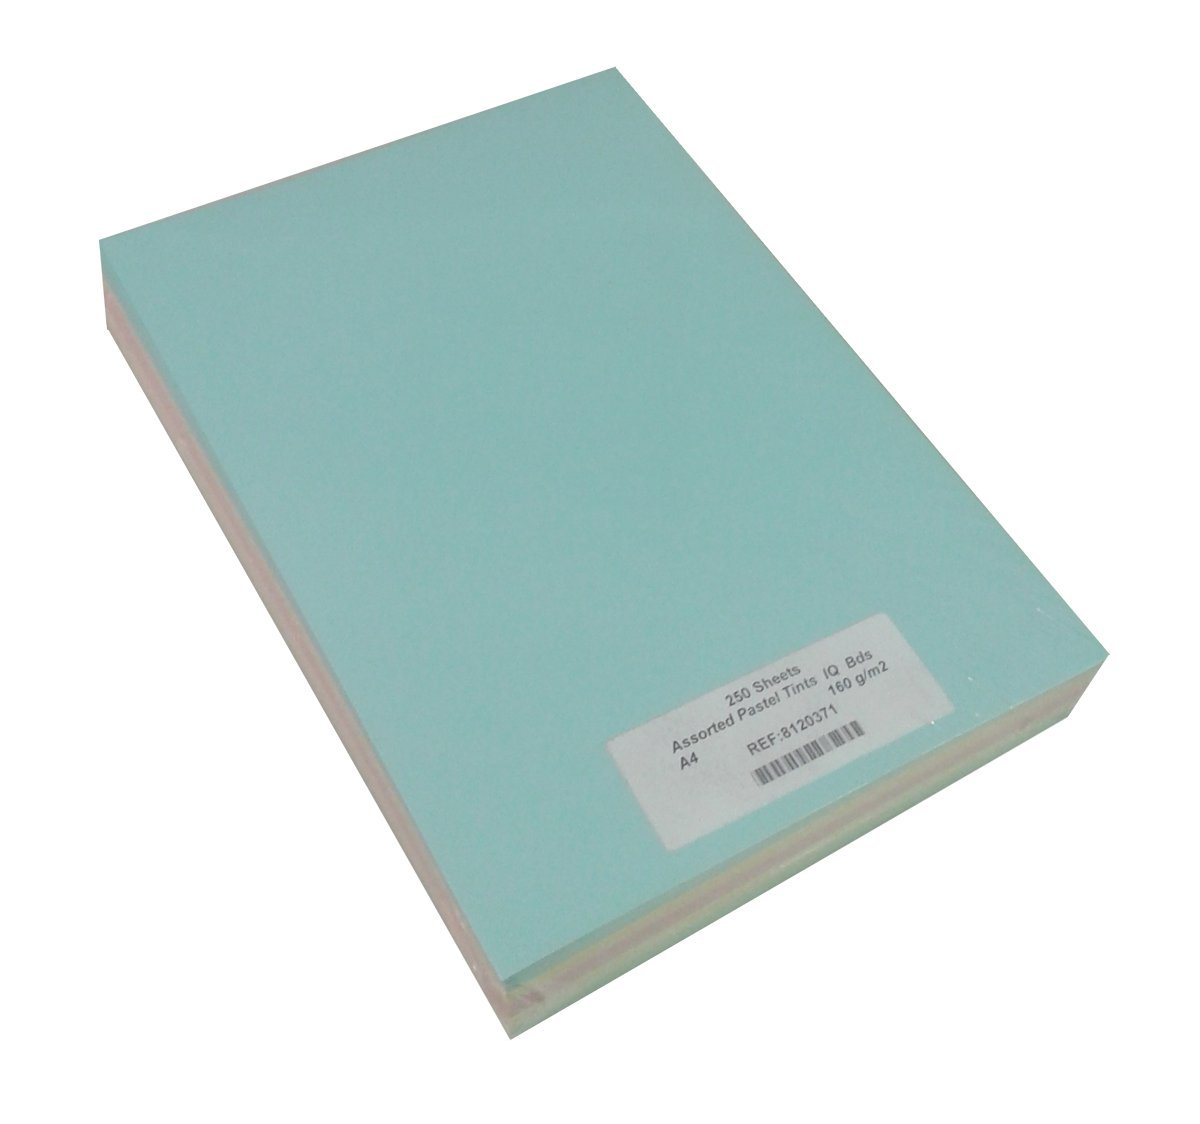 250 Sheet A4 Assorted Card Pack - Assorted Pastel Colours Grosvenor House Papers